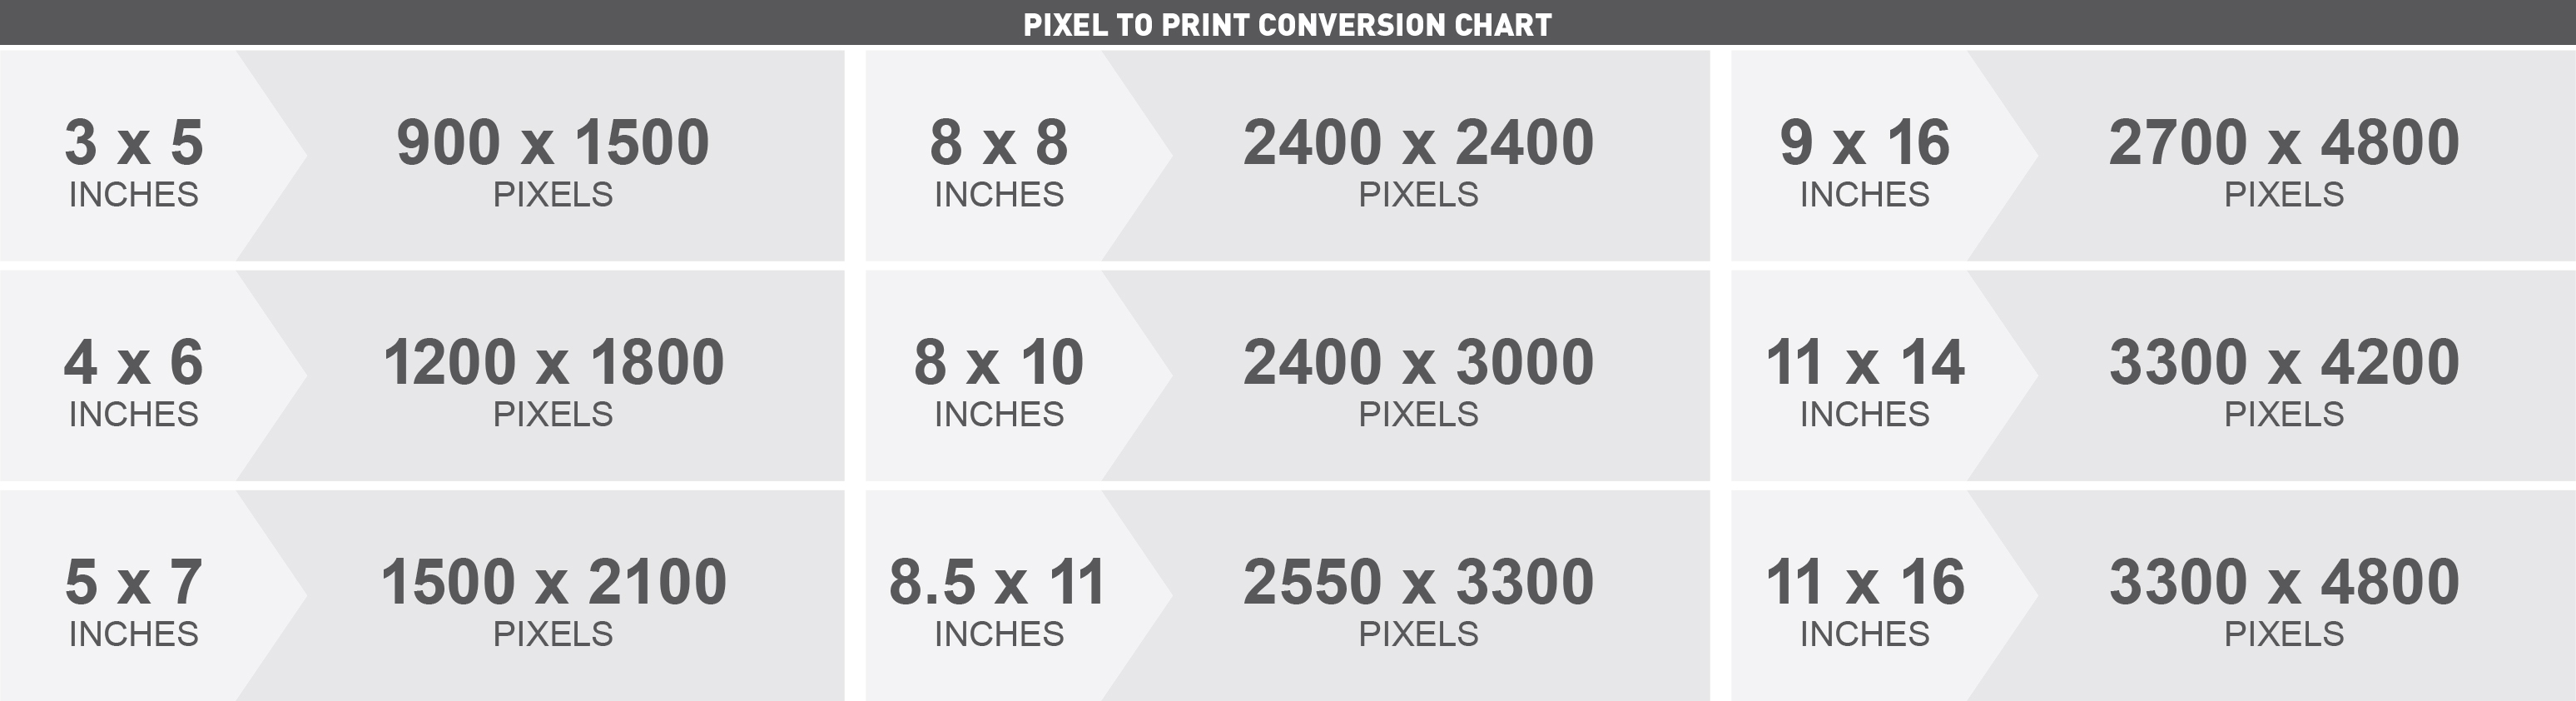 pixel-to-print-conversion-chart